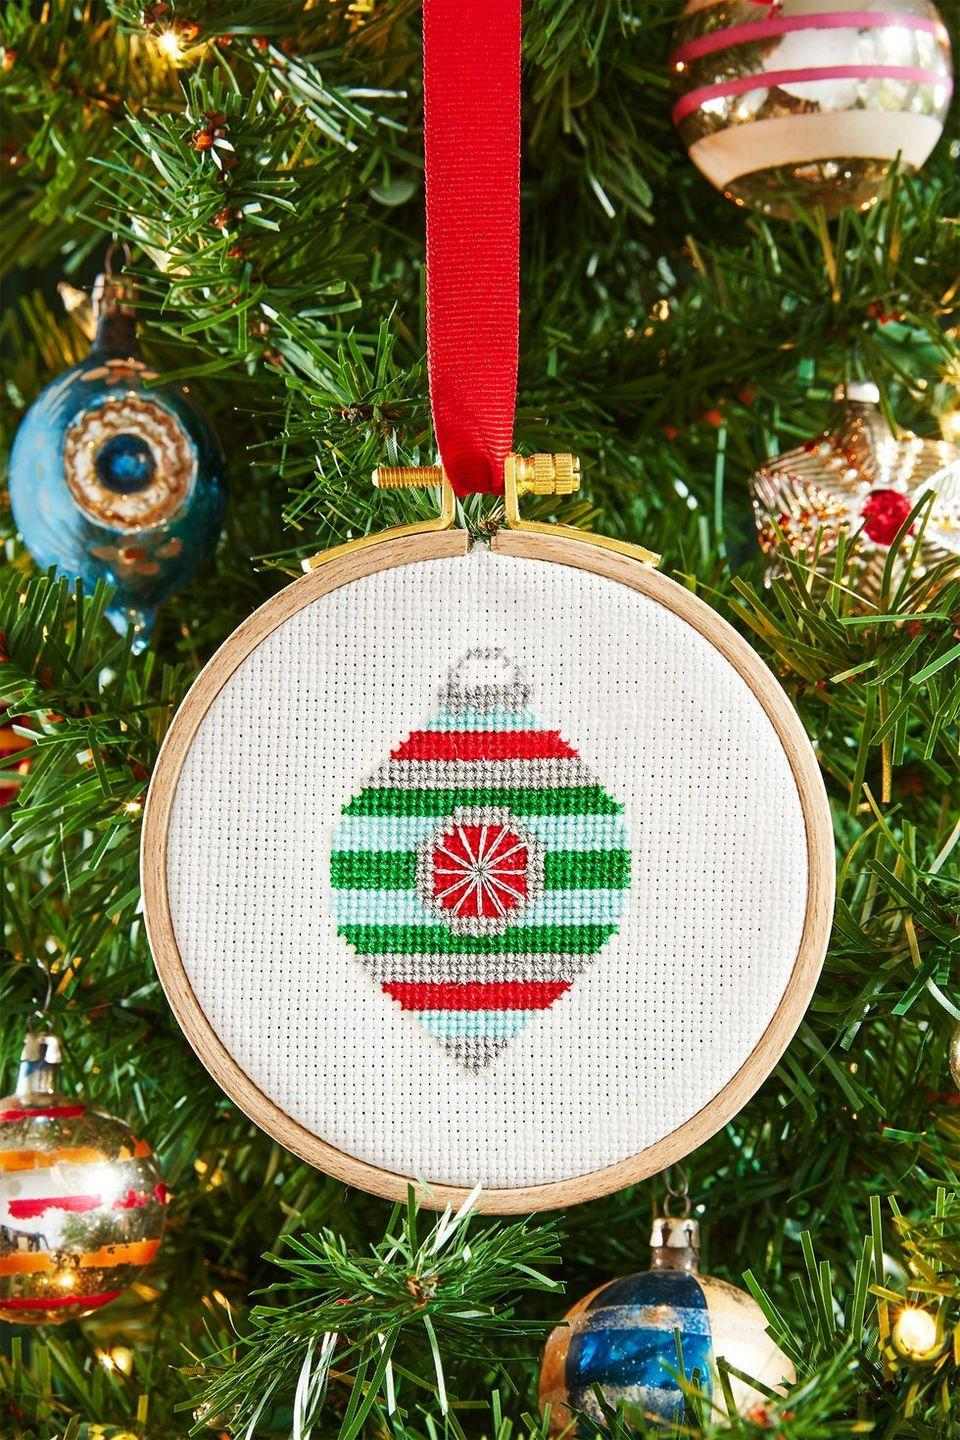 """<p>Crafter-noon? Yes, please! Even beginners can learn to cross-stitch quickly—and with our <a href=""""https://www.countryliving.com/diy-crafts/a6380/cross-stitch/"""" rel=""""nofollow noopener"""" target=""""_blank"""" data-ylk=""""slk:easy tutorials"""" class=""""link rapid-noclick-resp"""">easy tutorials</a>, you can guide the way. Of course, you don't just have to stick to cross-stitch designs. There are so many DIY ornament possibilities out there!</p><p><a class=""""link rapid-noclick-resp"""" href=""""https://www.amazon.com/LaRibbons-inch-Double-Satin-Ribbon/dp/B01HXCF7JQ?tag=syn-yahoo-20&ascsubtag=%5Bartid%7C10050.g.2218%5Bsrc%7Cyahoo-us"""" rel=""""nofollow noopener"""" target=""""_blank"""" data-ylk=""""slk:SHOP RIBBON"""">SHOP RIBBON</a></p>"""